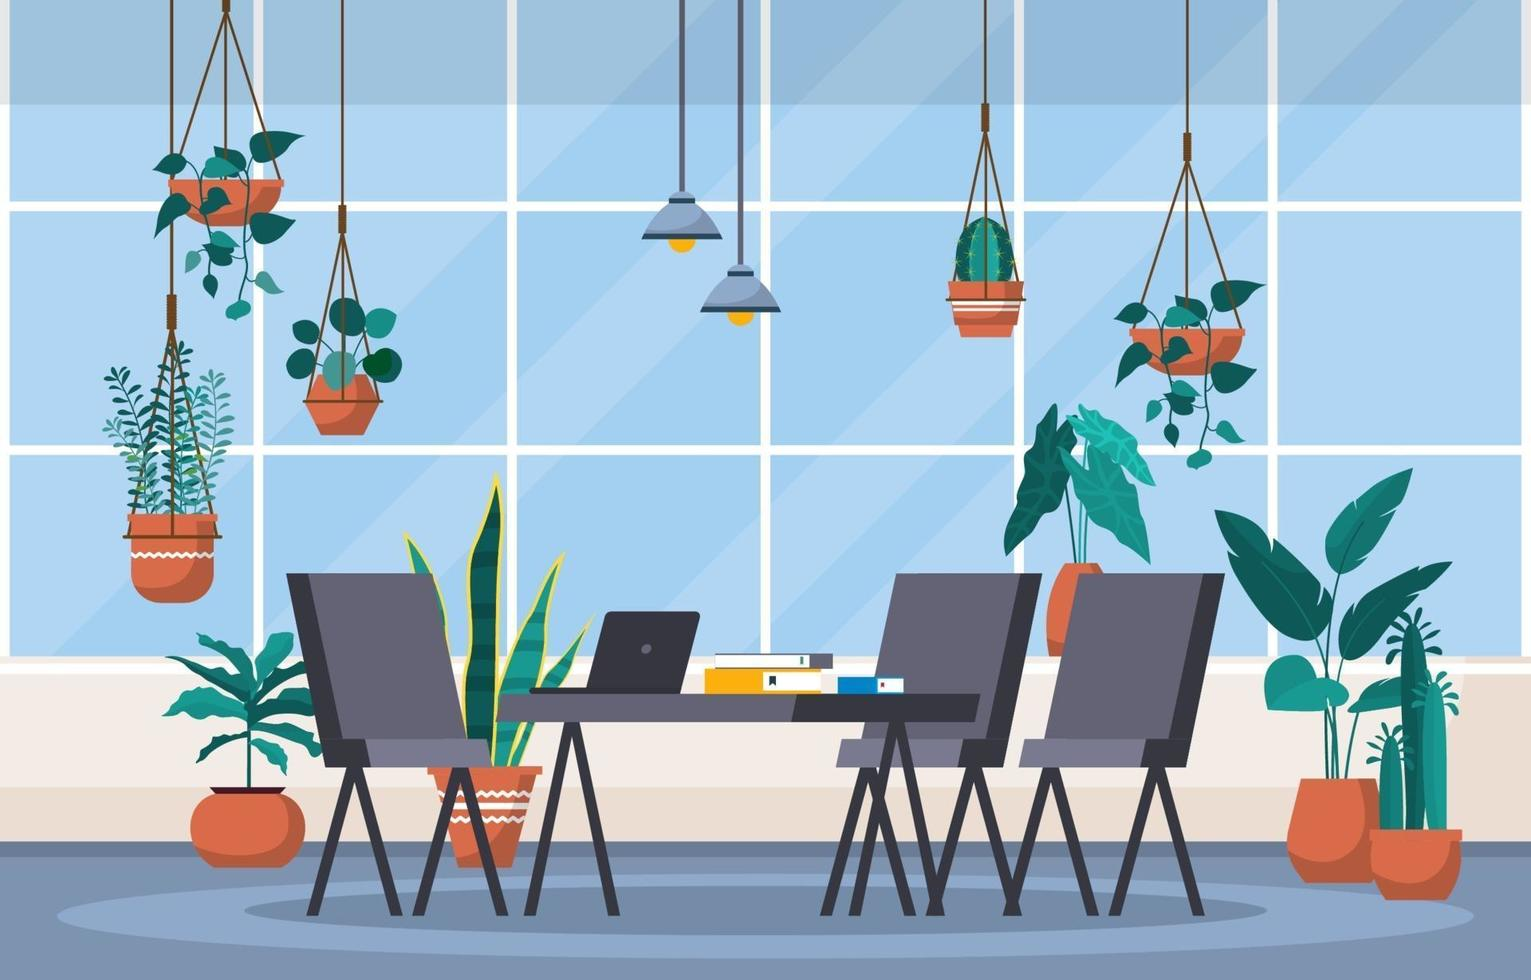 Tropical Houseplant Green Decorative Plant in Office Workspace Illustration vector